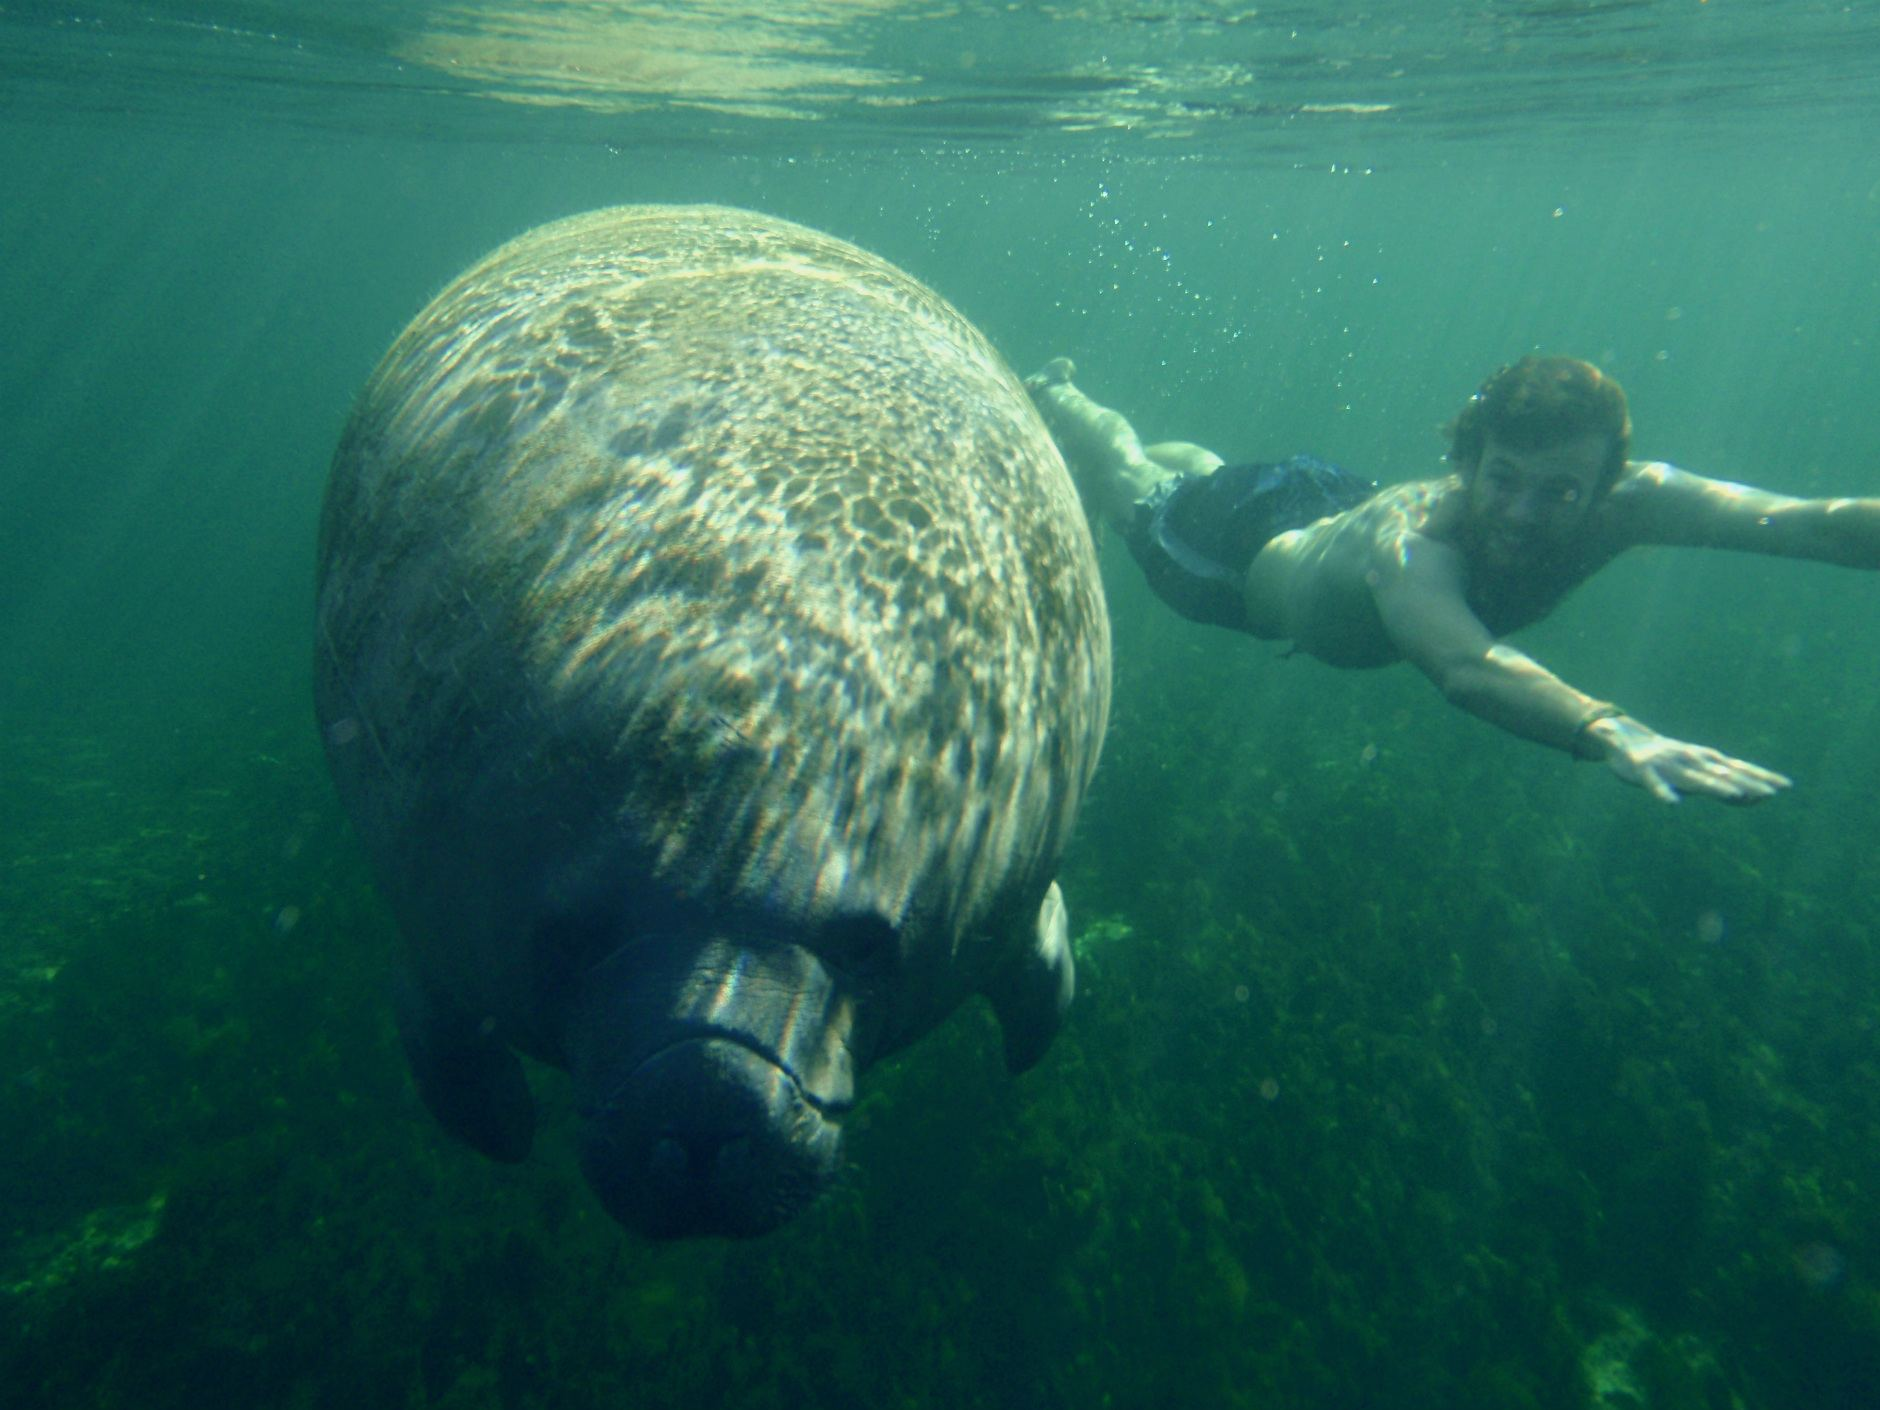 manatee facts, manatee information, seacow facts |Manatees Playing